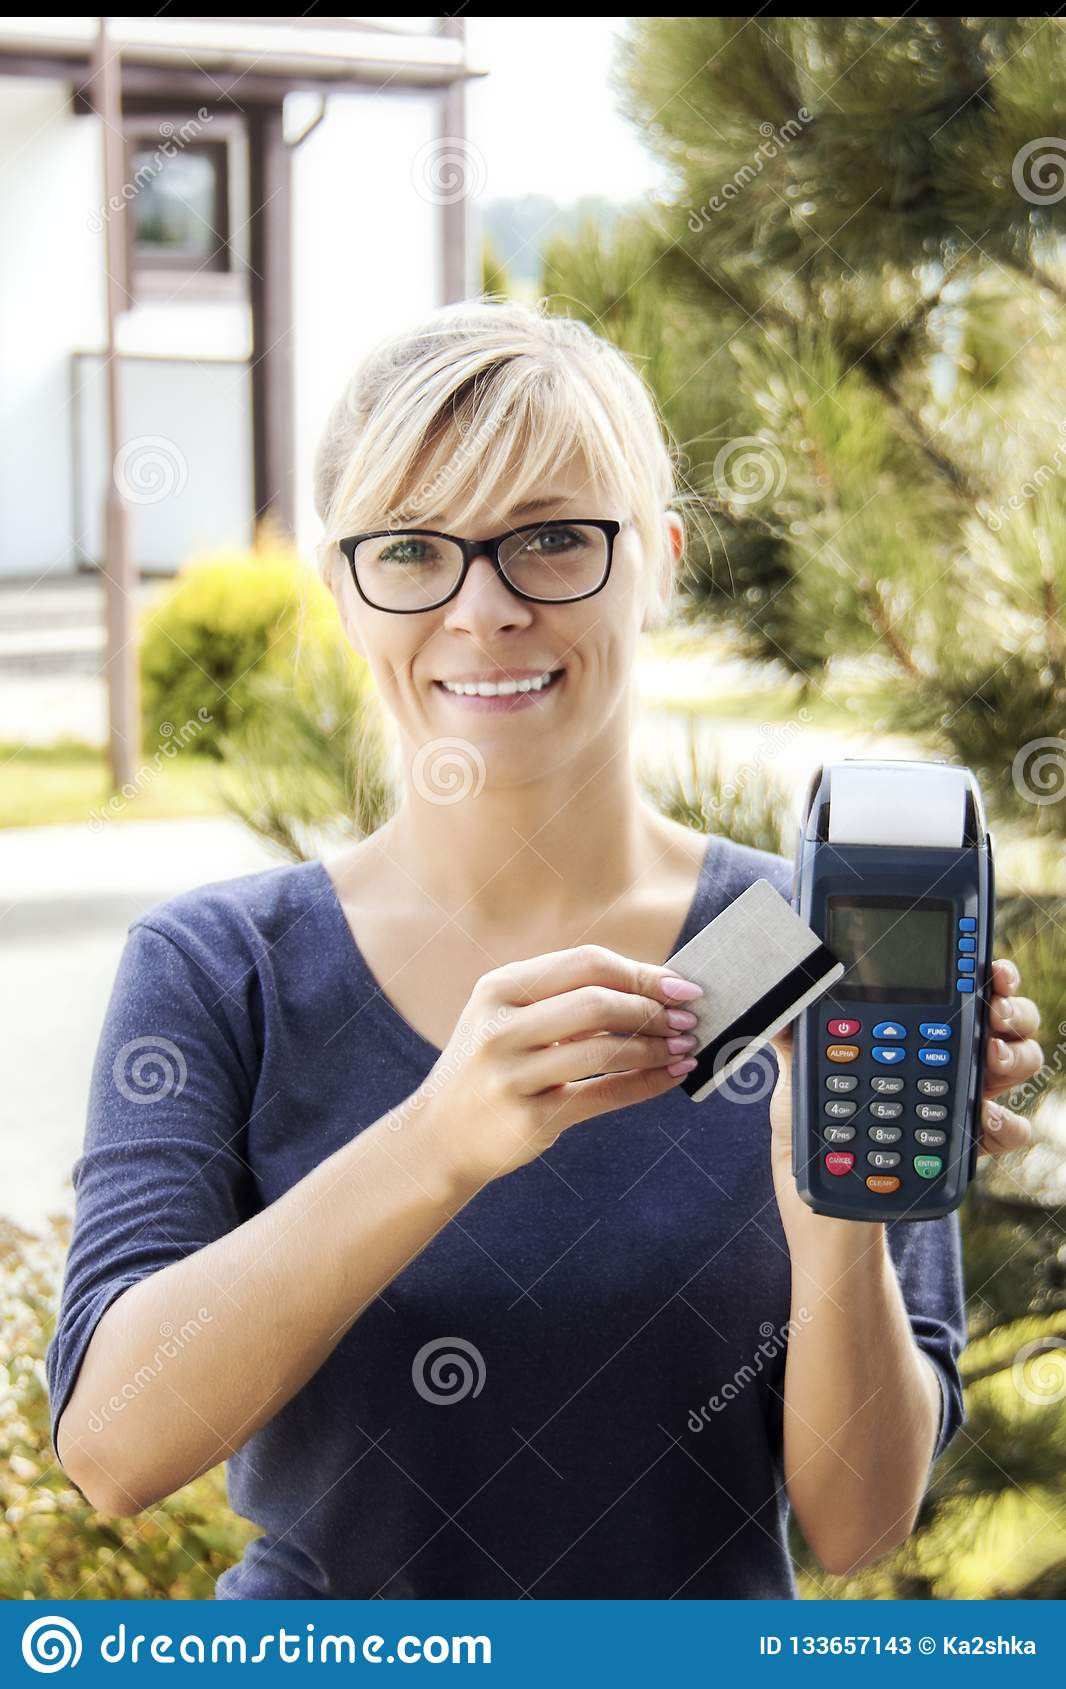 A woman is holding a payment terminal in the hands of the house. concept of buying a home and real estate